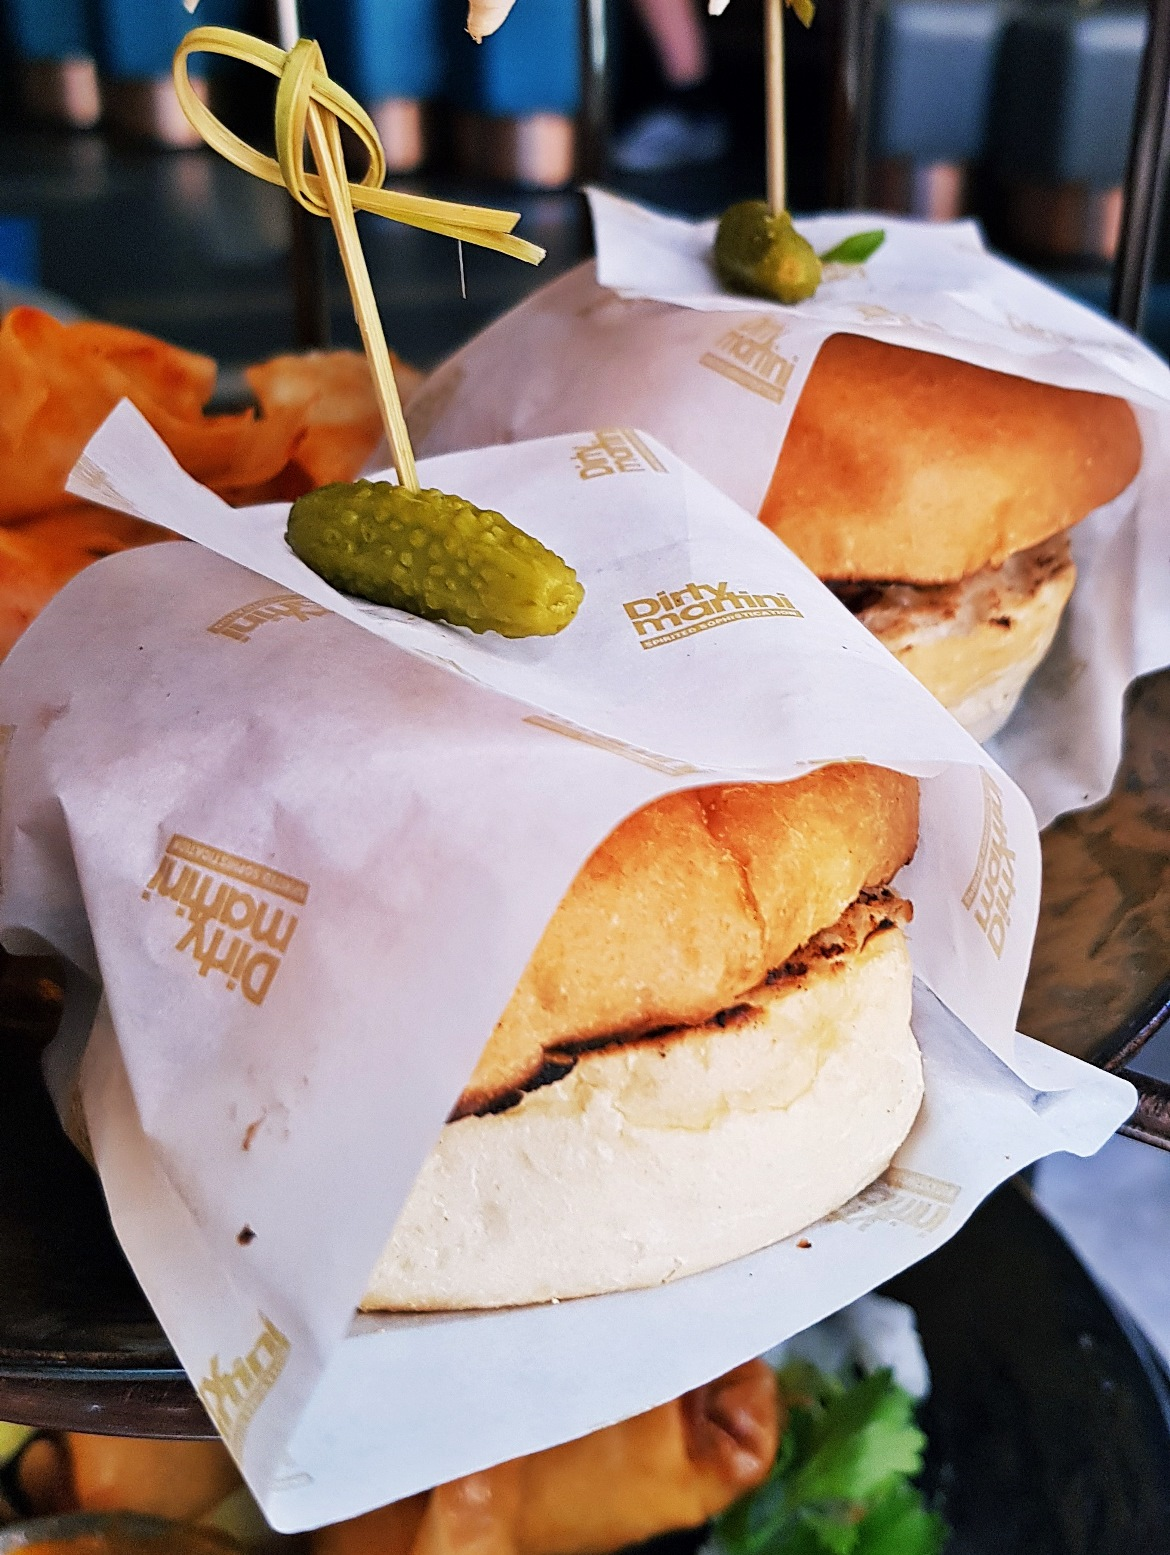 Cheesburger sliders - Bottomless Brunch at Dirty Martini, review by BeckyBecky Blogs